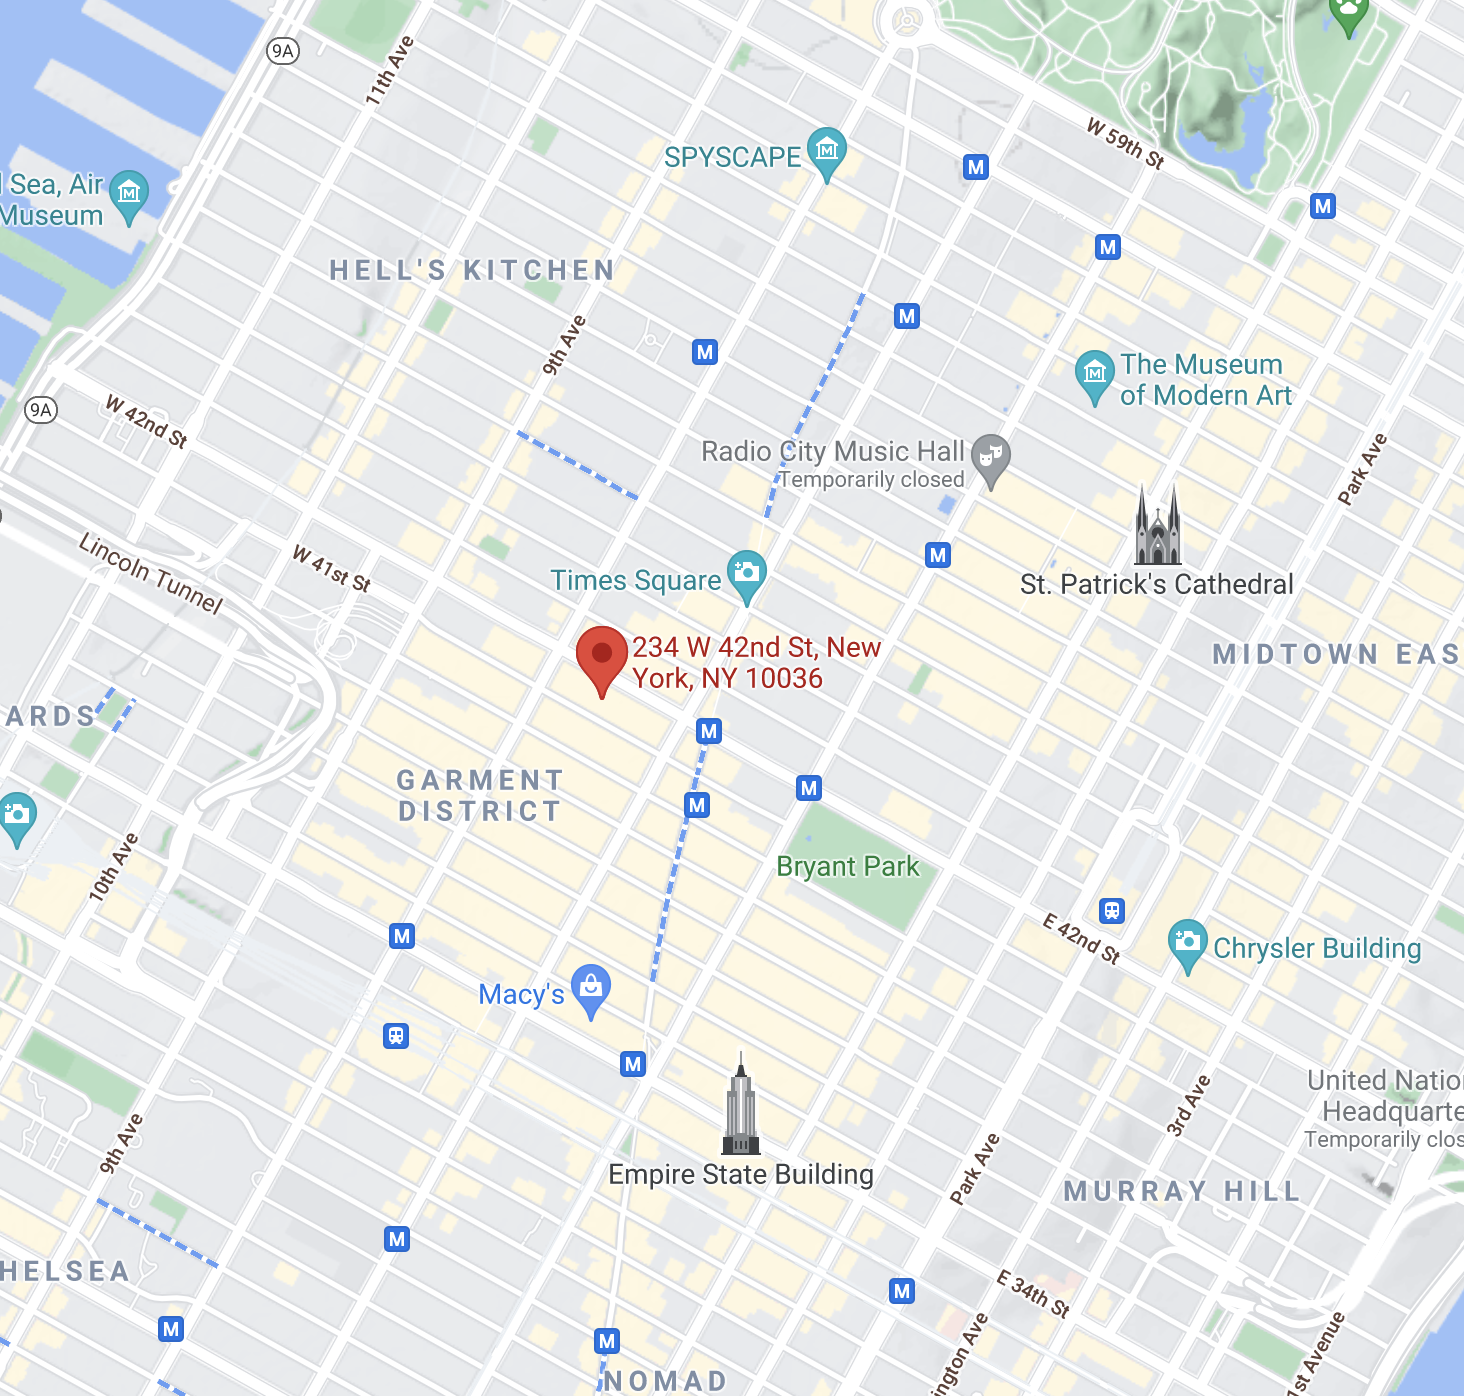 Map of Times Square with Showstoppers location marked